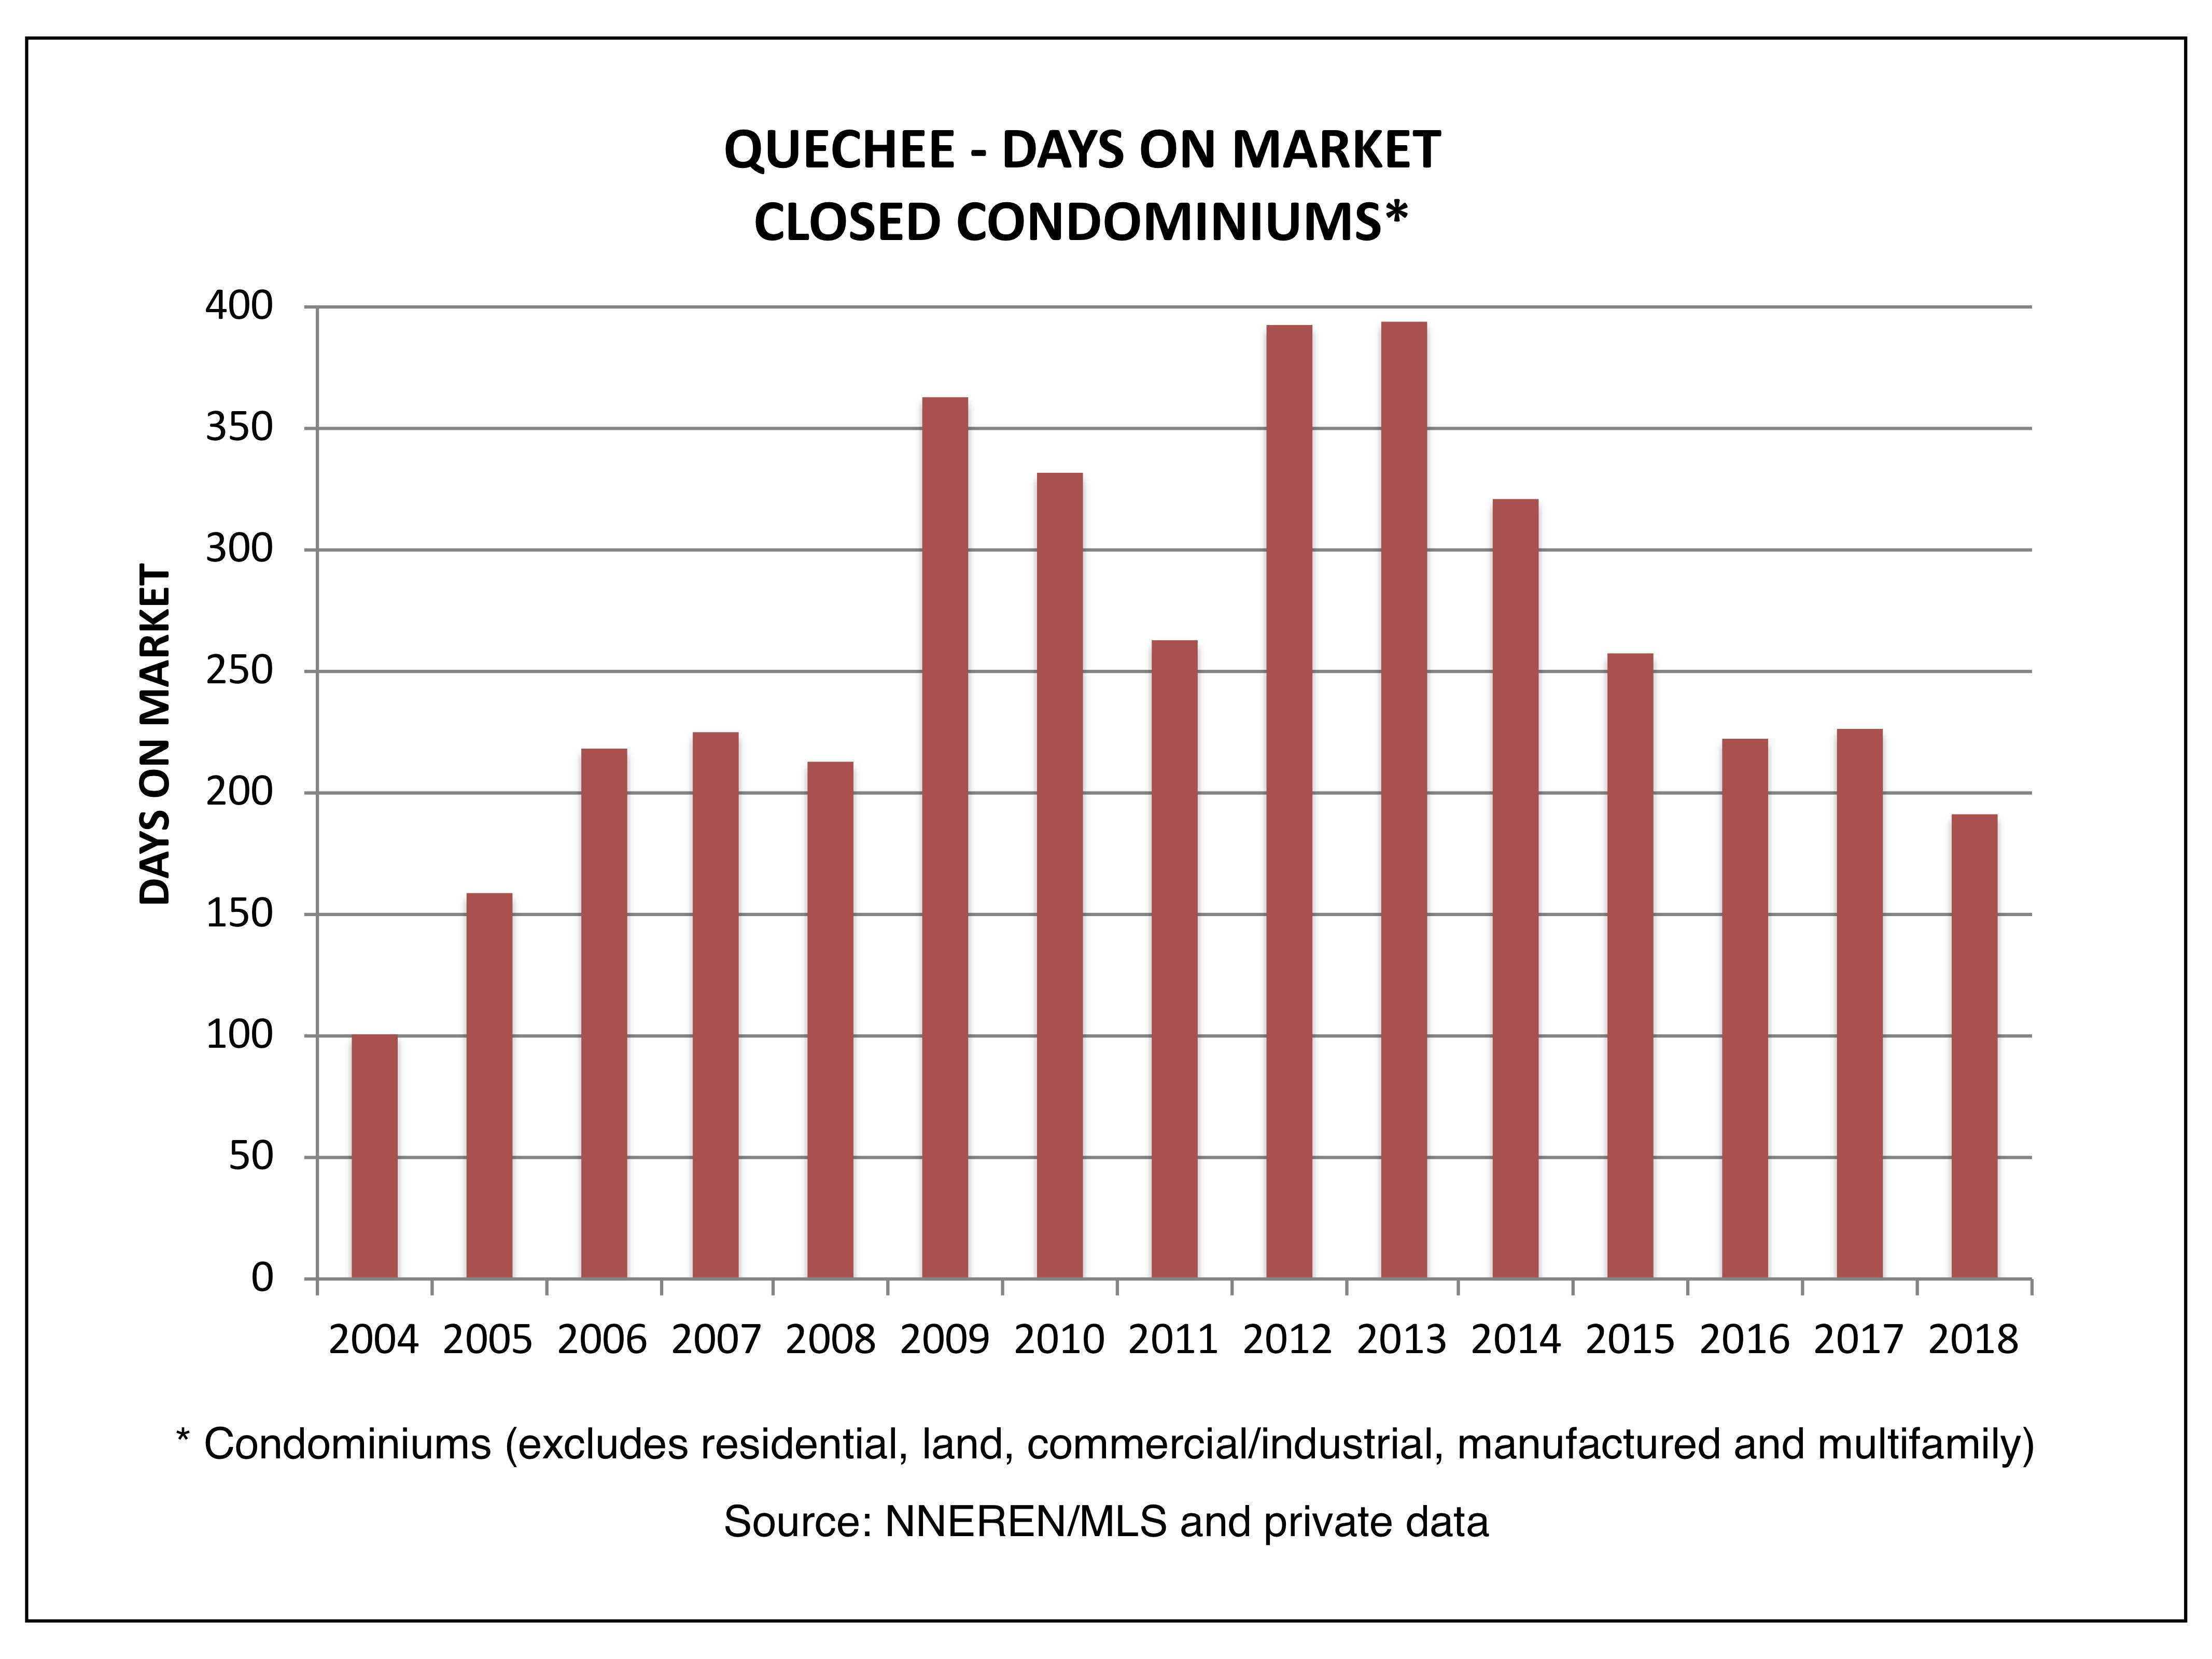 Quechee VT Real Estate - Days on Market, Closed Condominiums